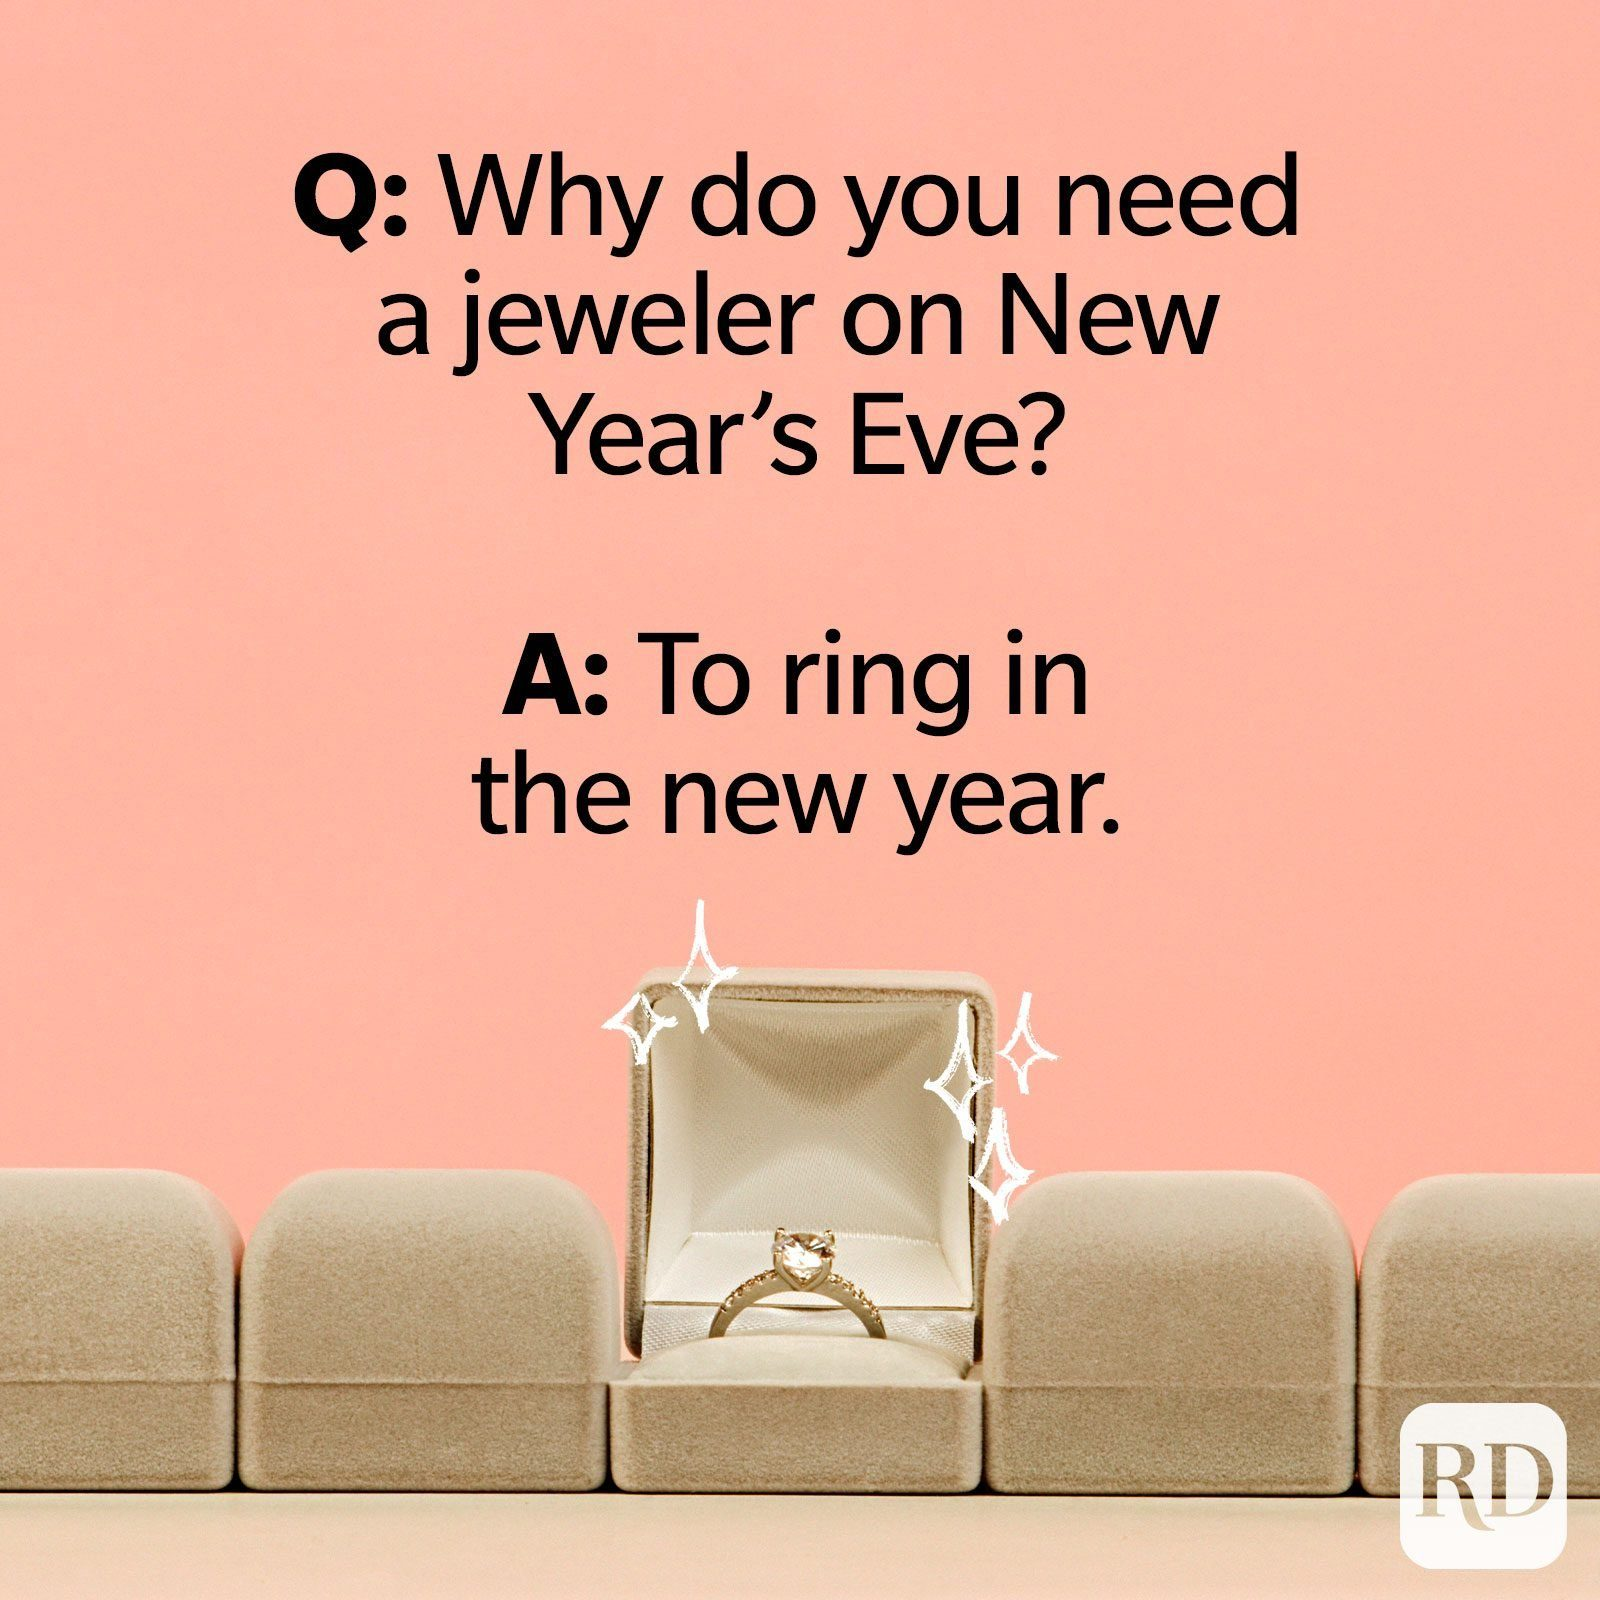 Q: Why do you need a jeweler on New Year's Eve? A: To ring in the new year.